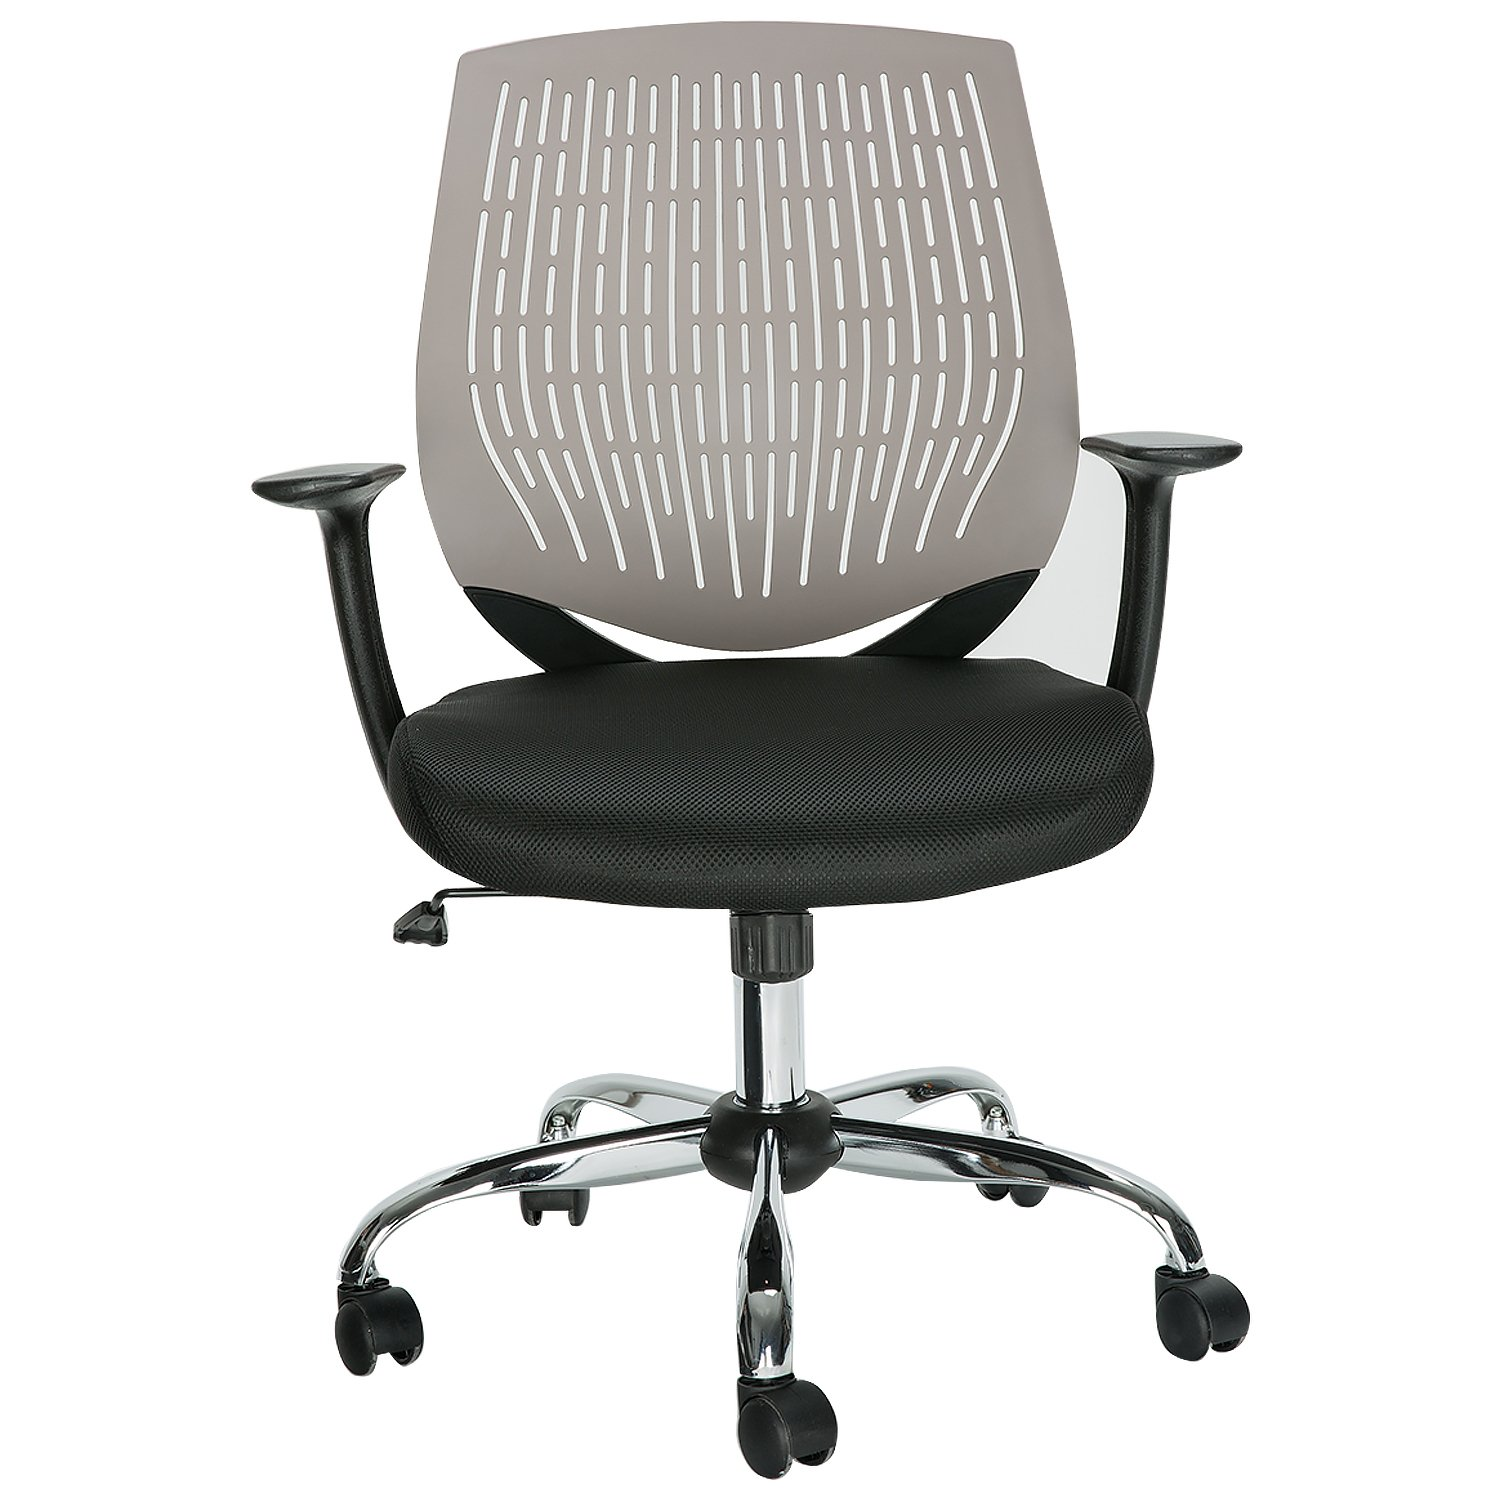 HollyHOME Ergonomic Mesh Task Chair, Mid Back Office Swivel Computer Desk Chair with Super Soft Back Support, Grey